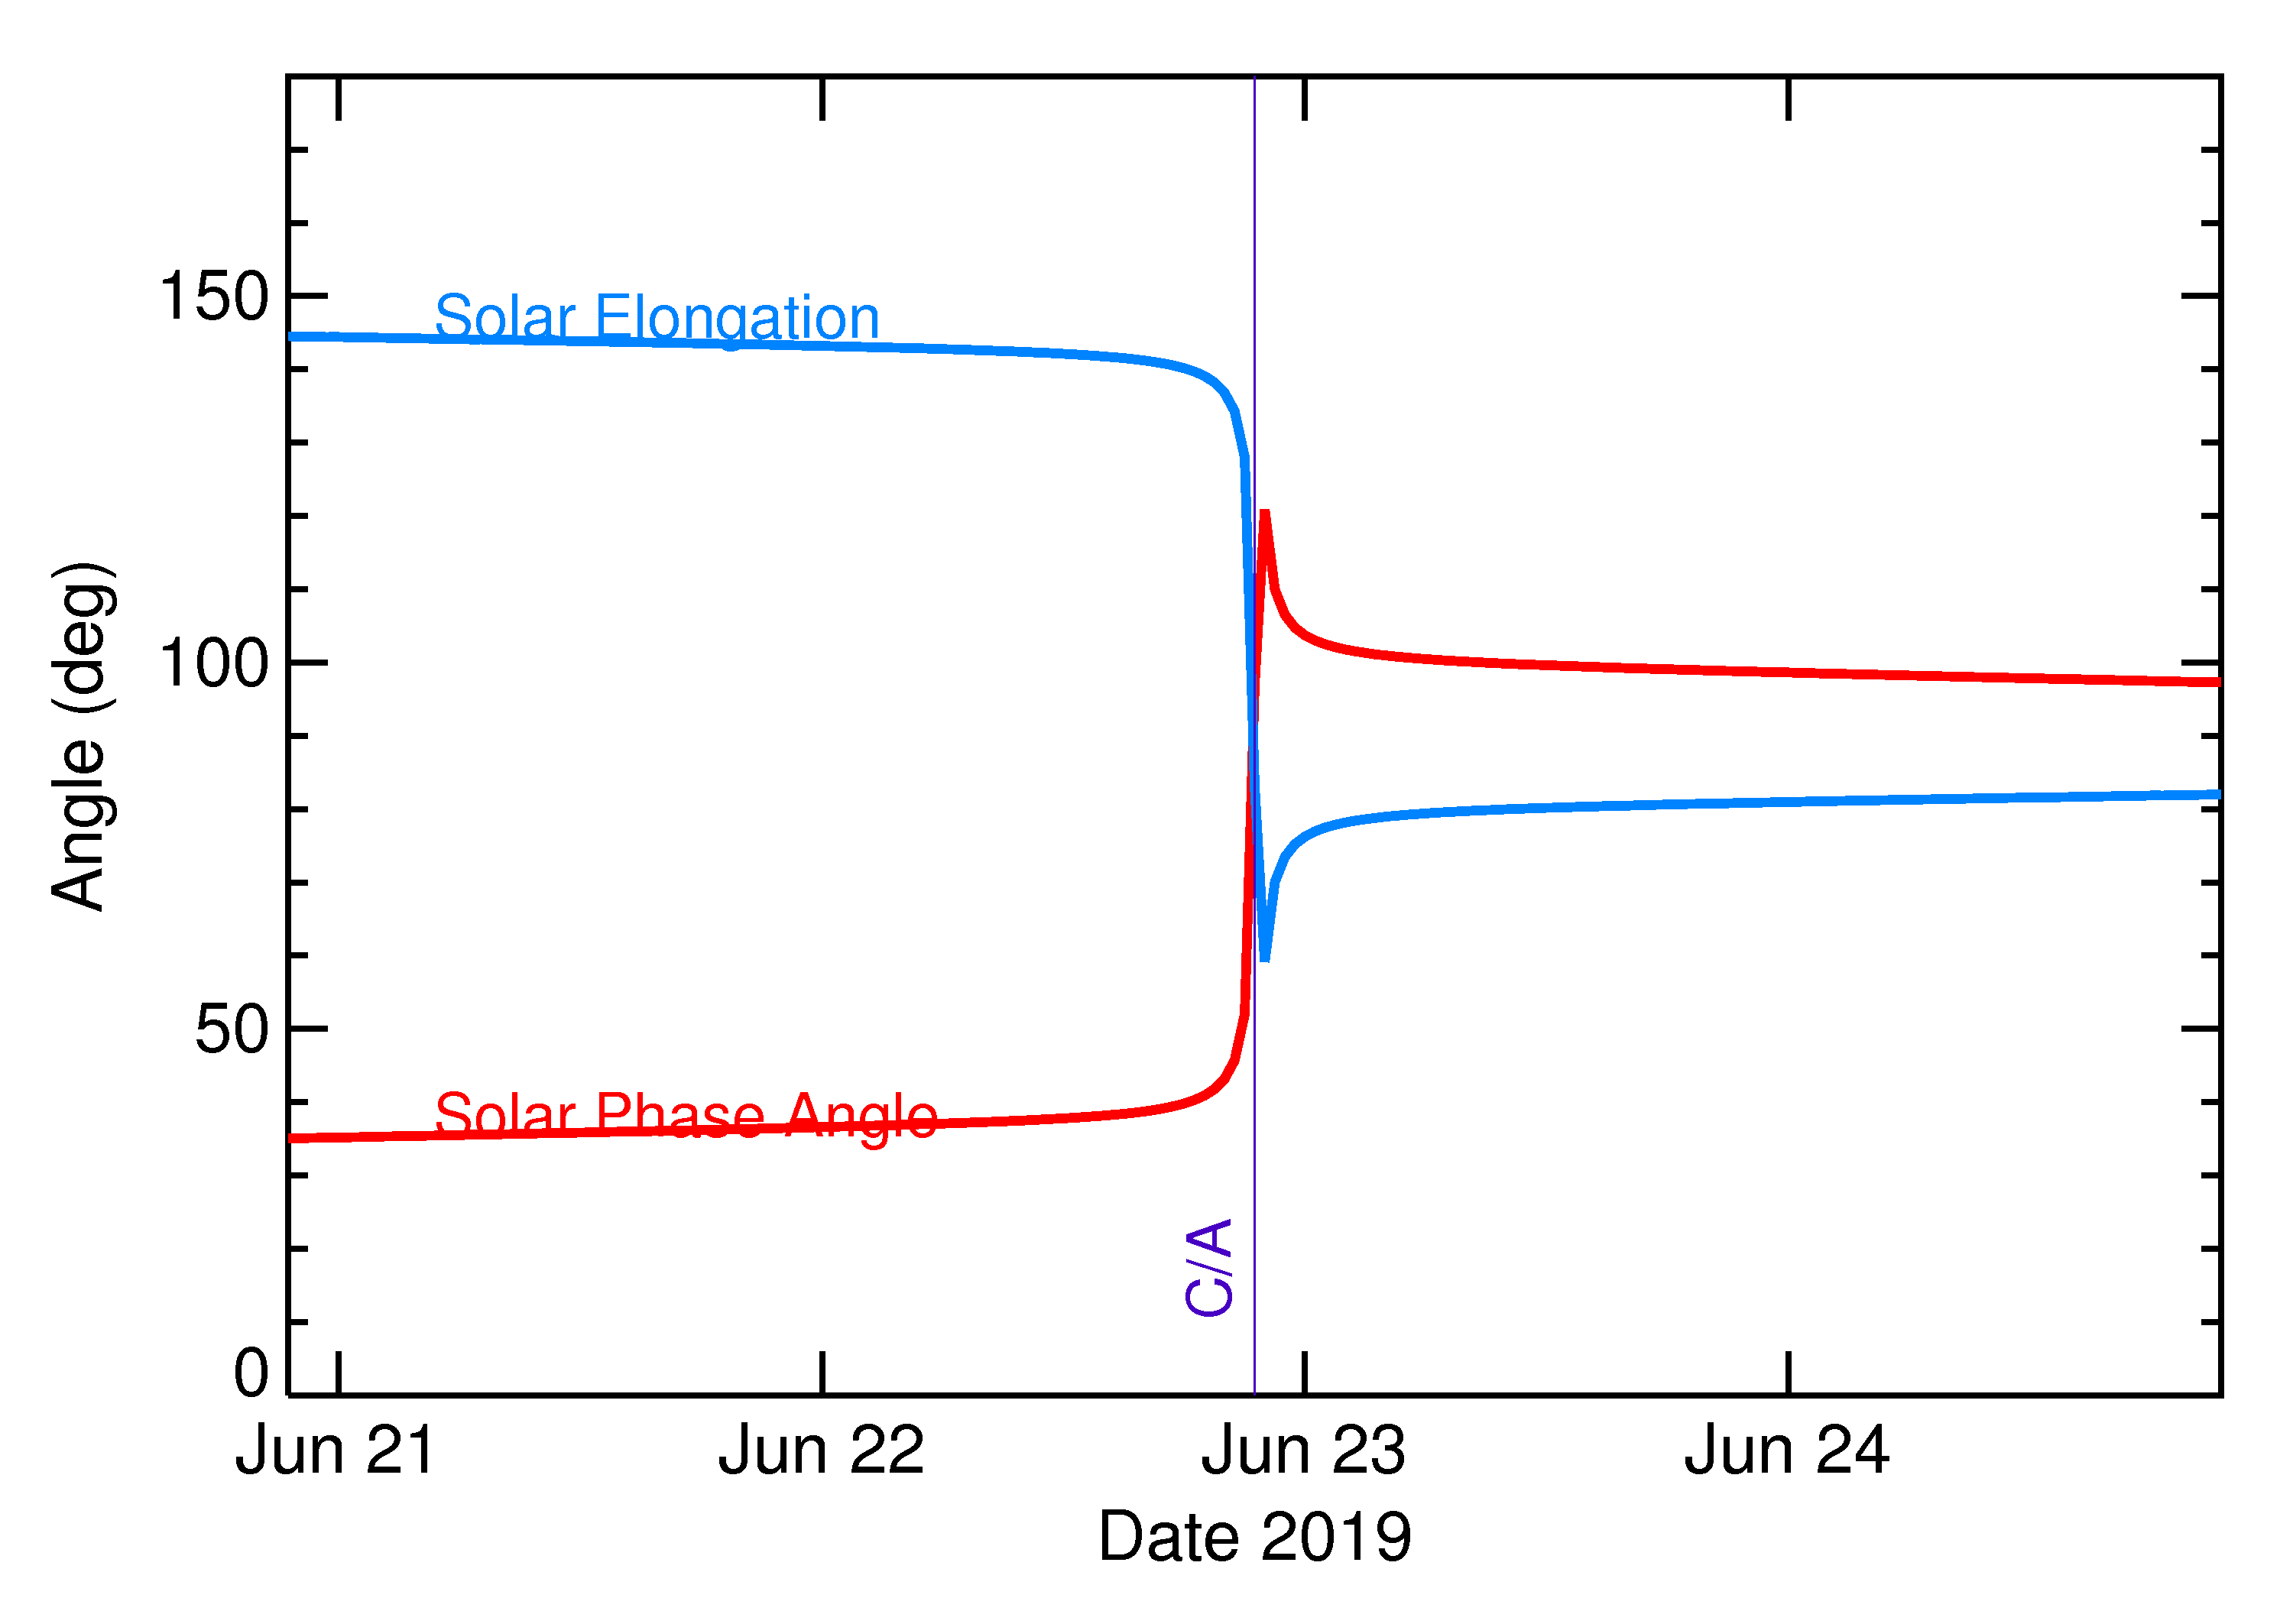 Solar Elongation and Solar Phase Angle of 2019 MO in the days around closest approach